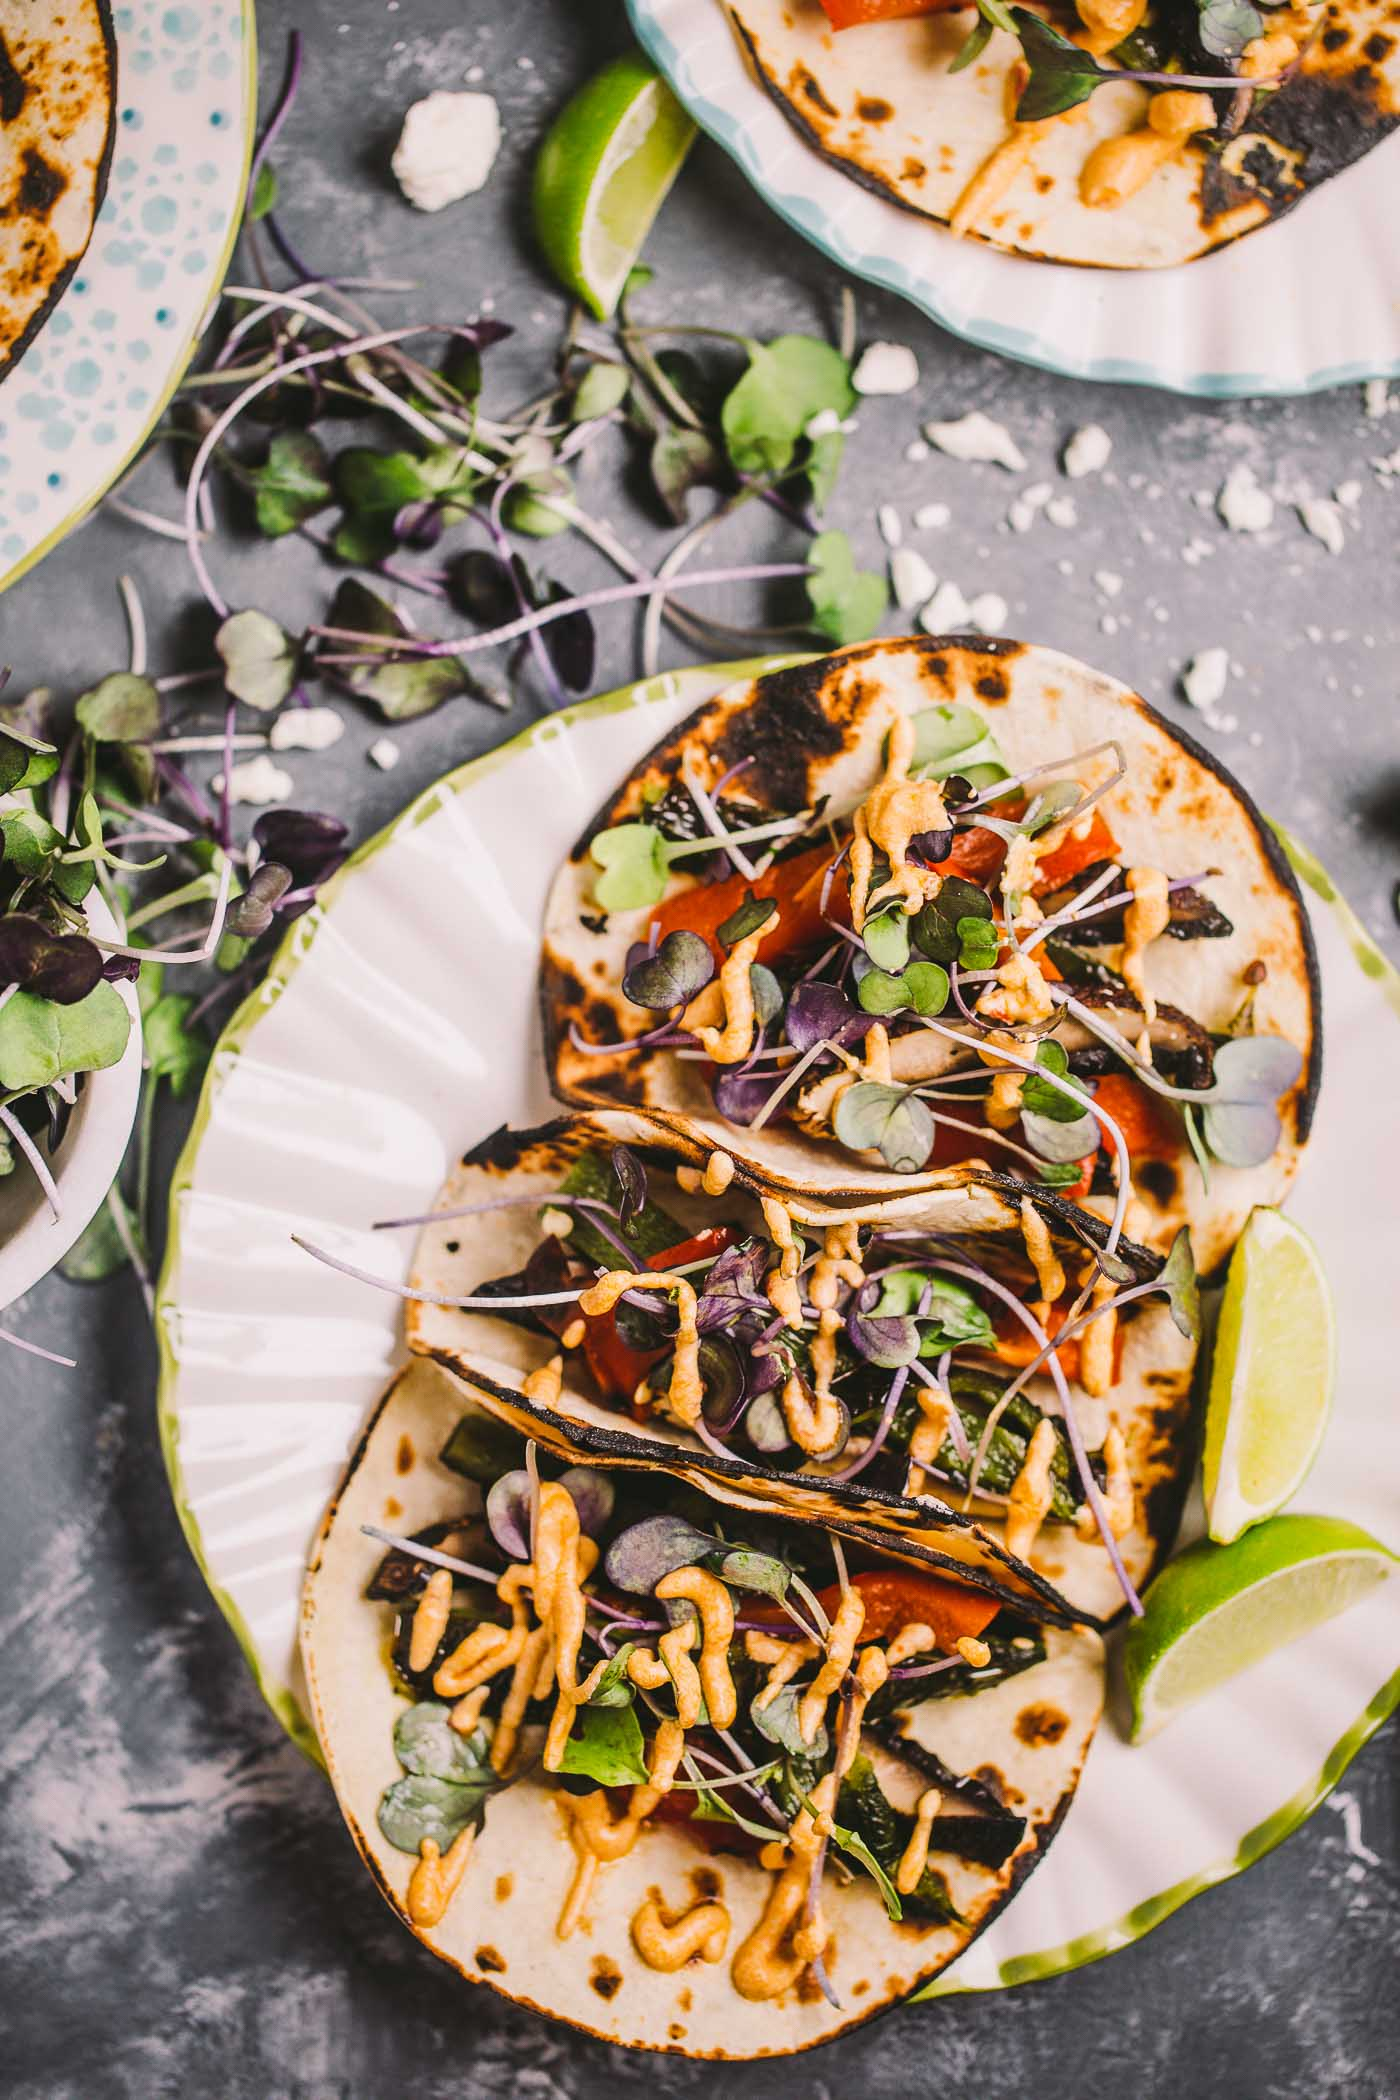 grilled vegetarian tacos loaded with end of summer vegetables (poblanos, red bell pepper, portobello mushrooms) that have been roasted over the direct flame on the grill. topped with a handful of spicy microgreens & a creamy, smoky, tangy goat cheese spread full of chipotle & lime. only thing missing is margs & guac!